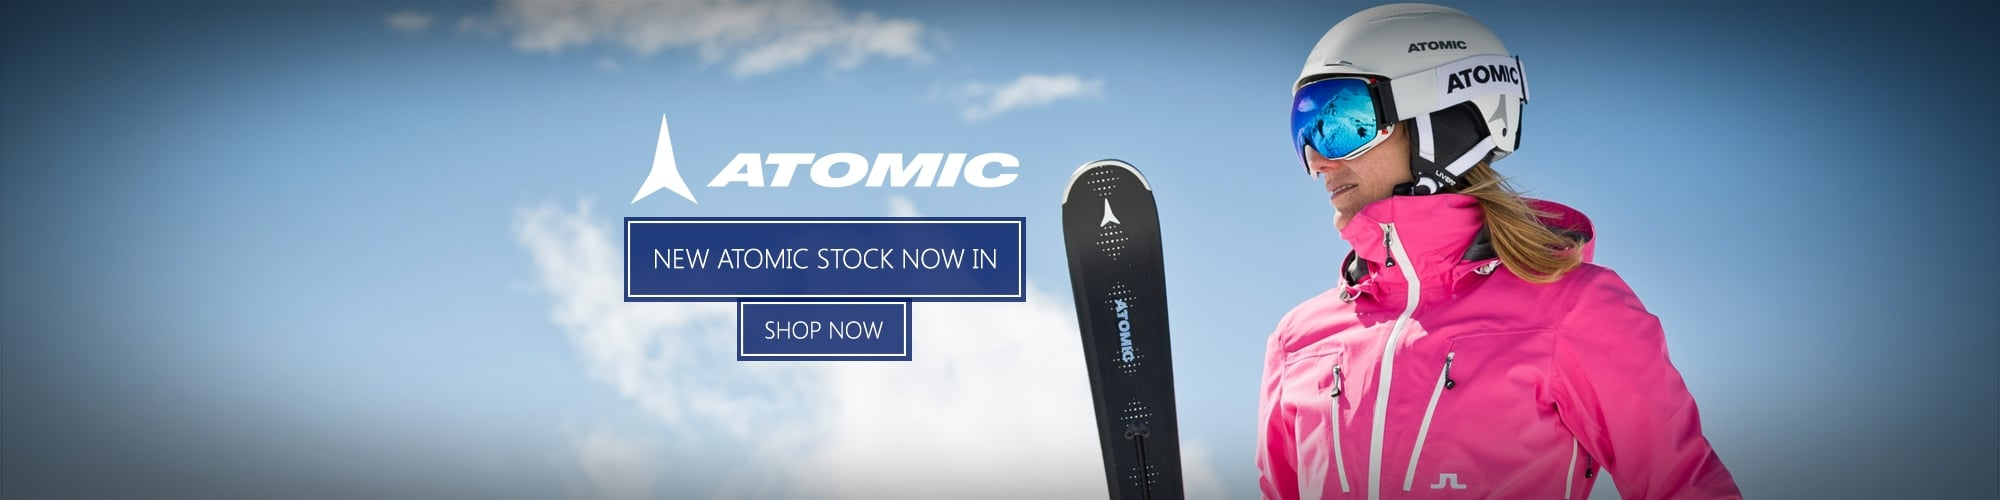 New Atomic Stock Now In